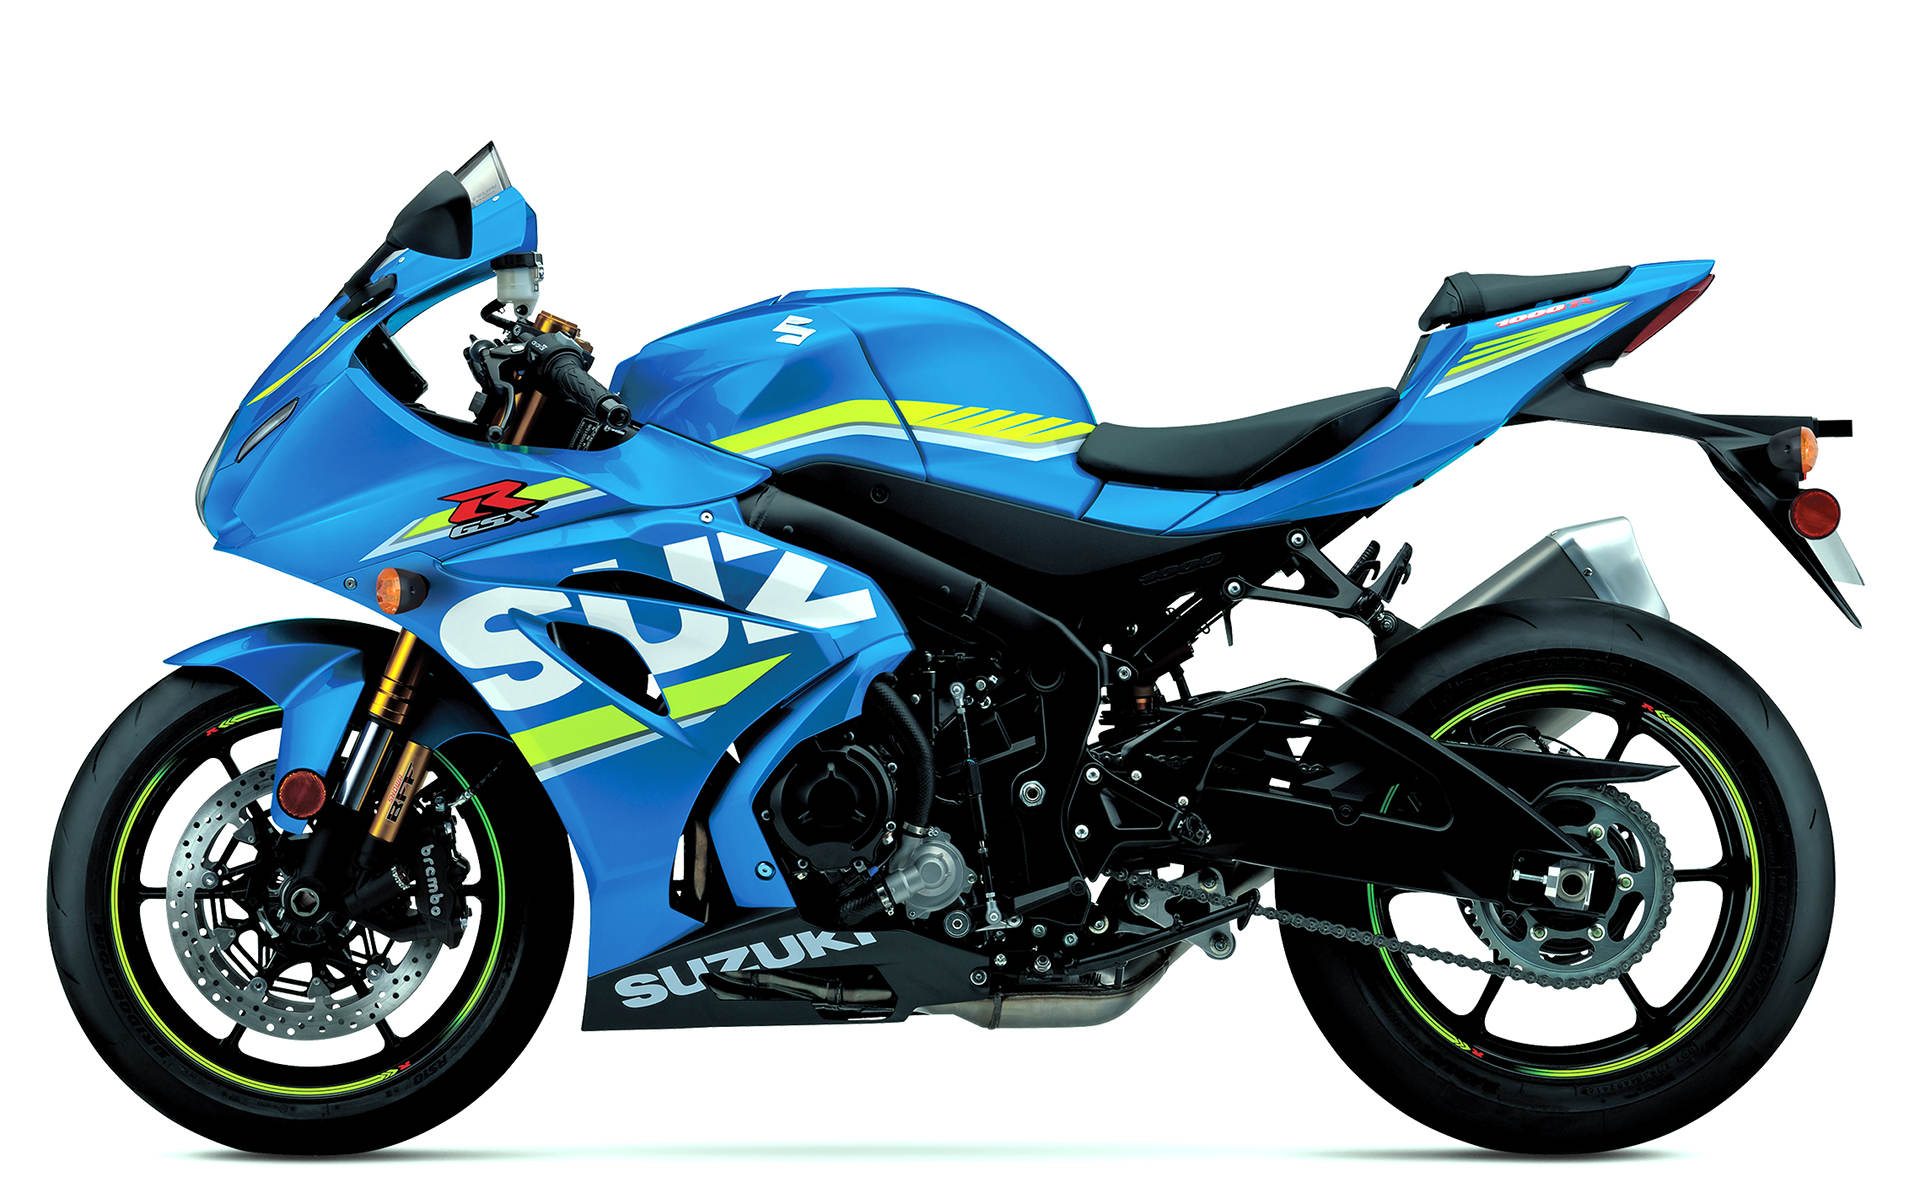 2018 suzuki hayabusa colors. simple suzuki suzuki announces colors and prices on several models u2013 new gsxr1000  starting at 14599 to 2018 suzuki hayabusa colors